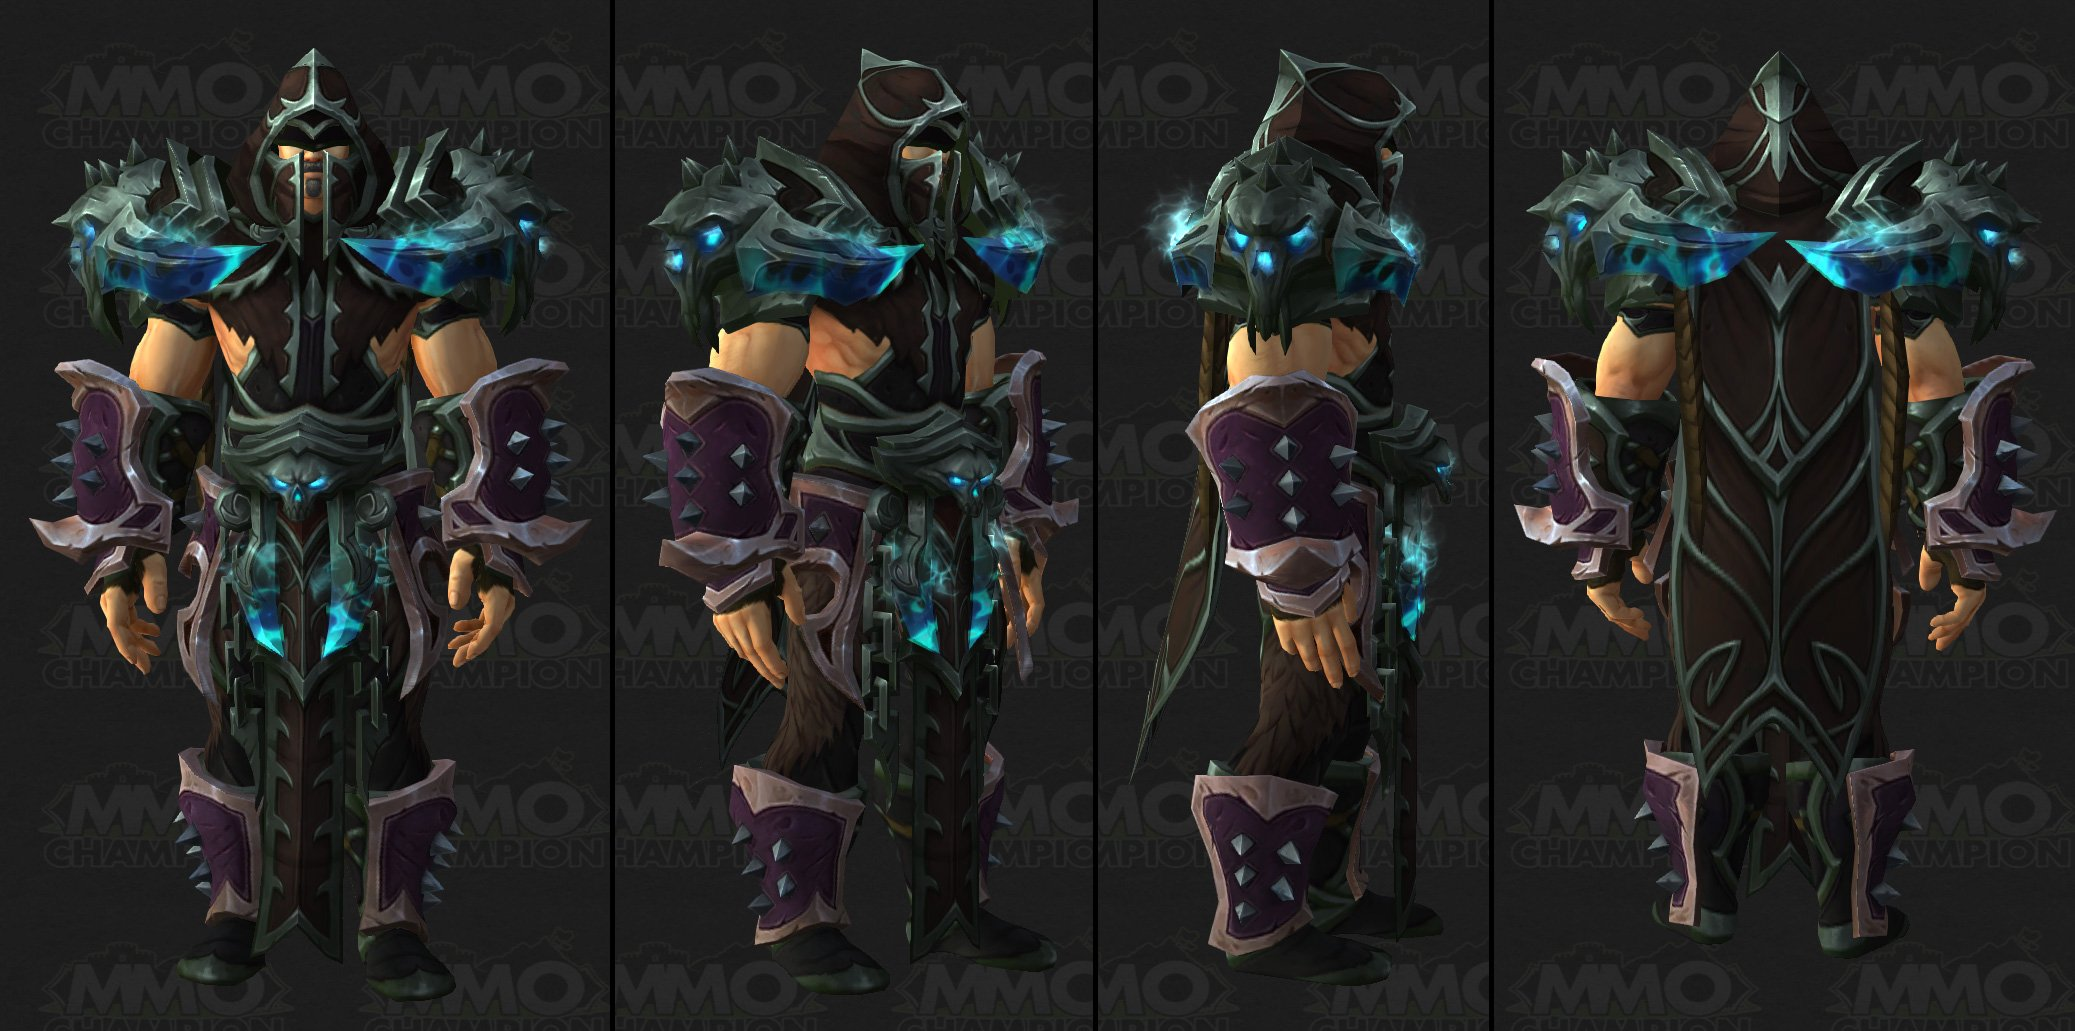 WoW Patch 7.3 - Tier 21 Armor Sets - MMO-Champion